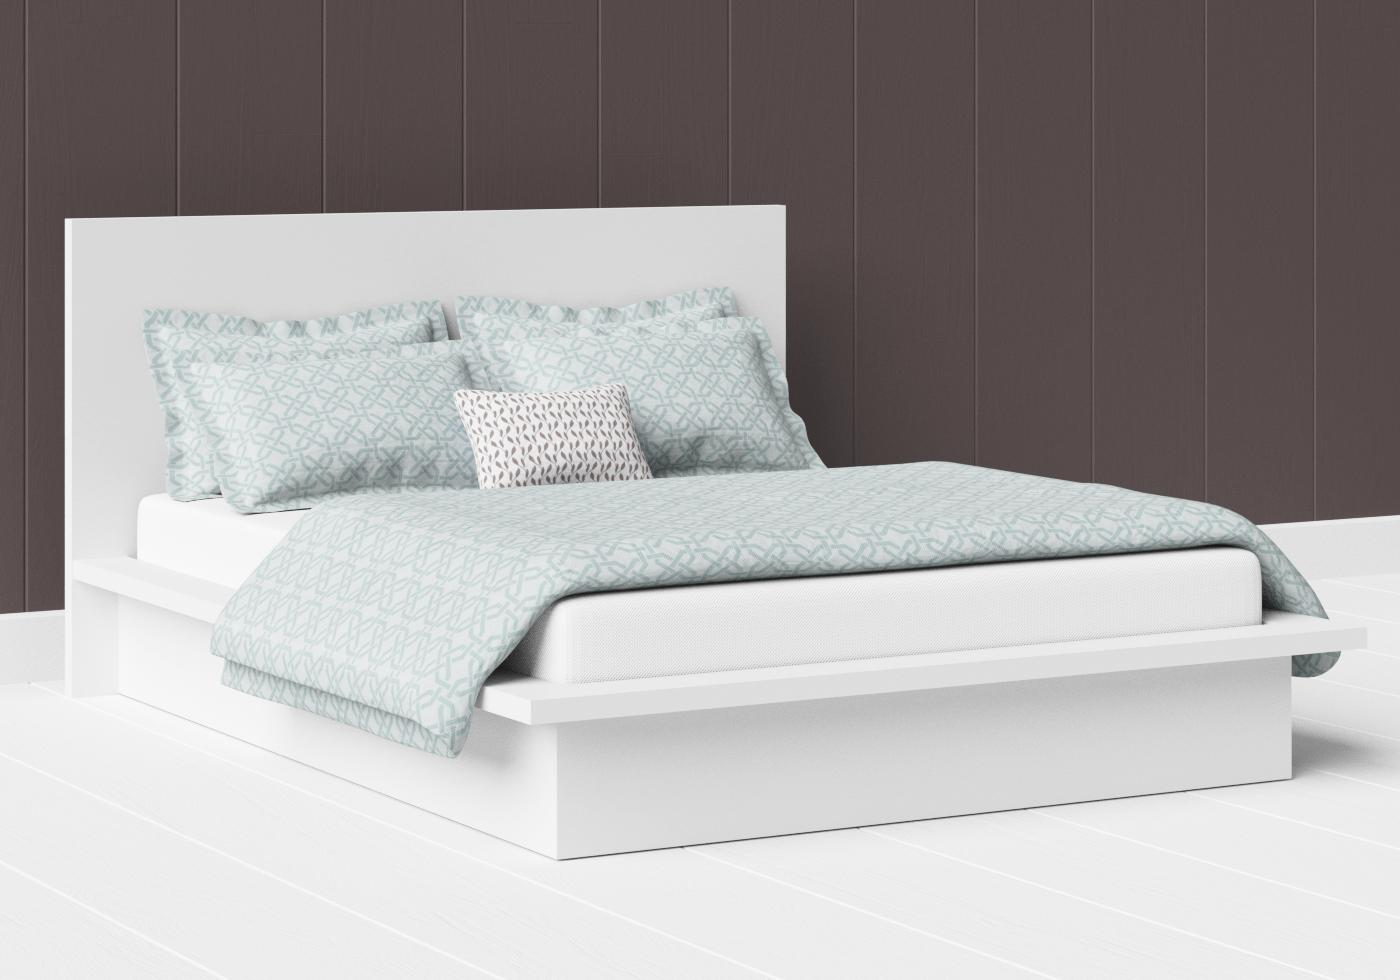 Warner low footend painted wood bed in satin white